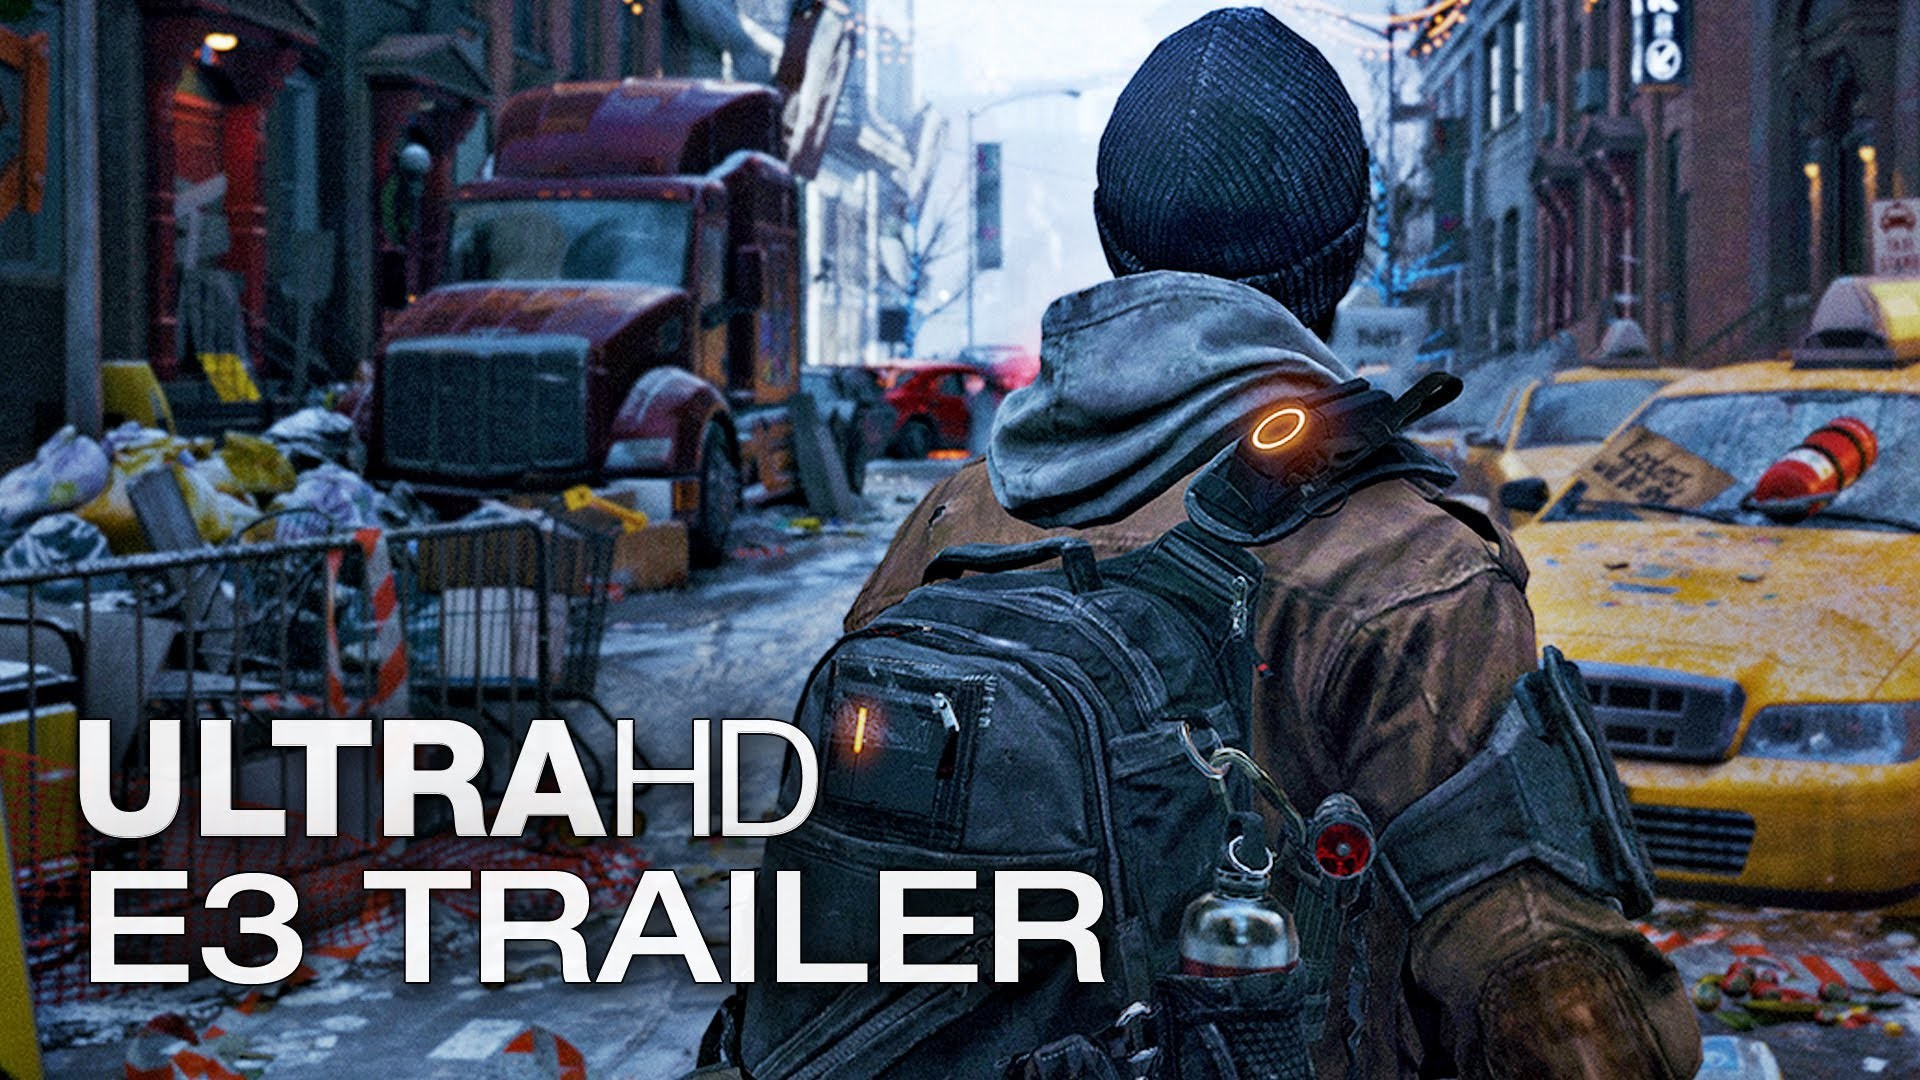 Tom Clancy's THE DIVISION E3 Trailer | 2013 Official Ubisoft [Ultra-HD] –  YouTube